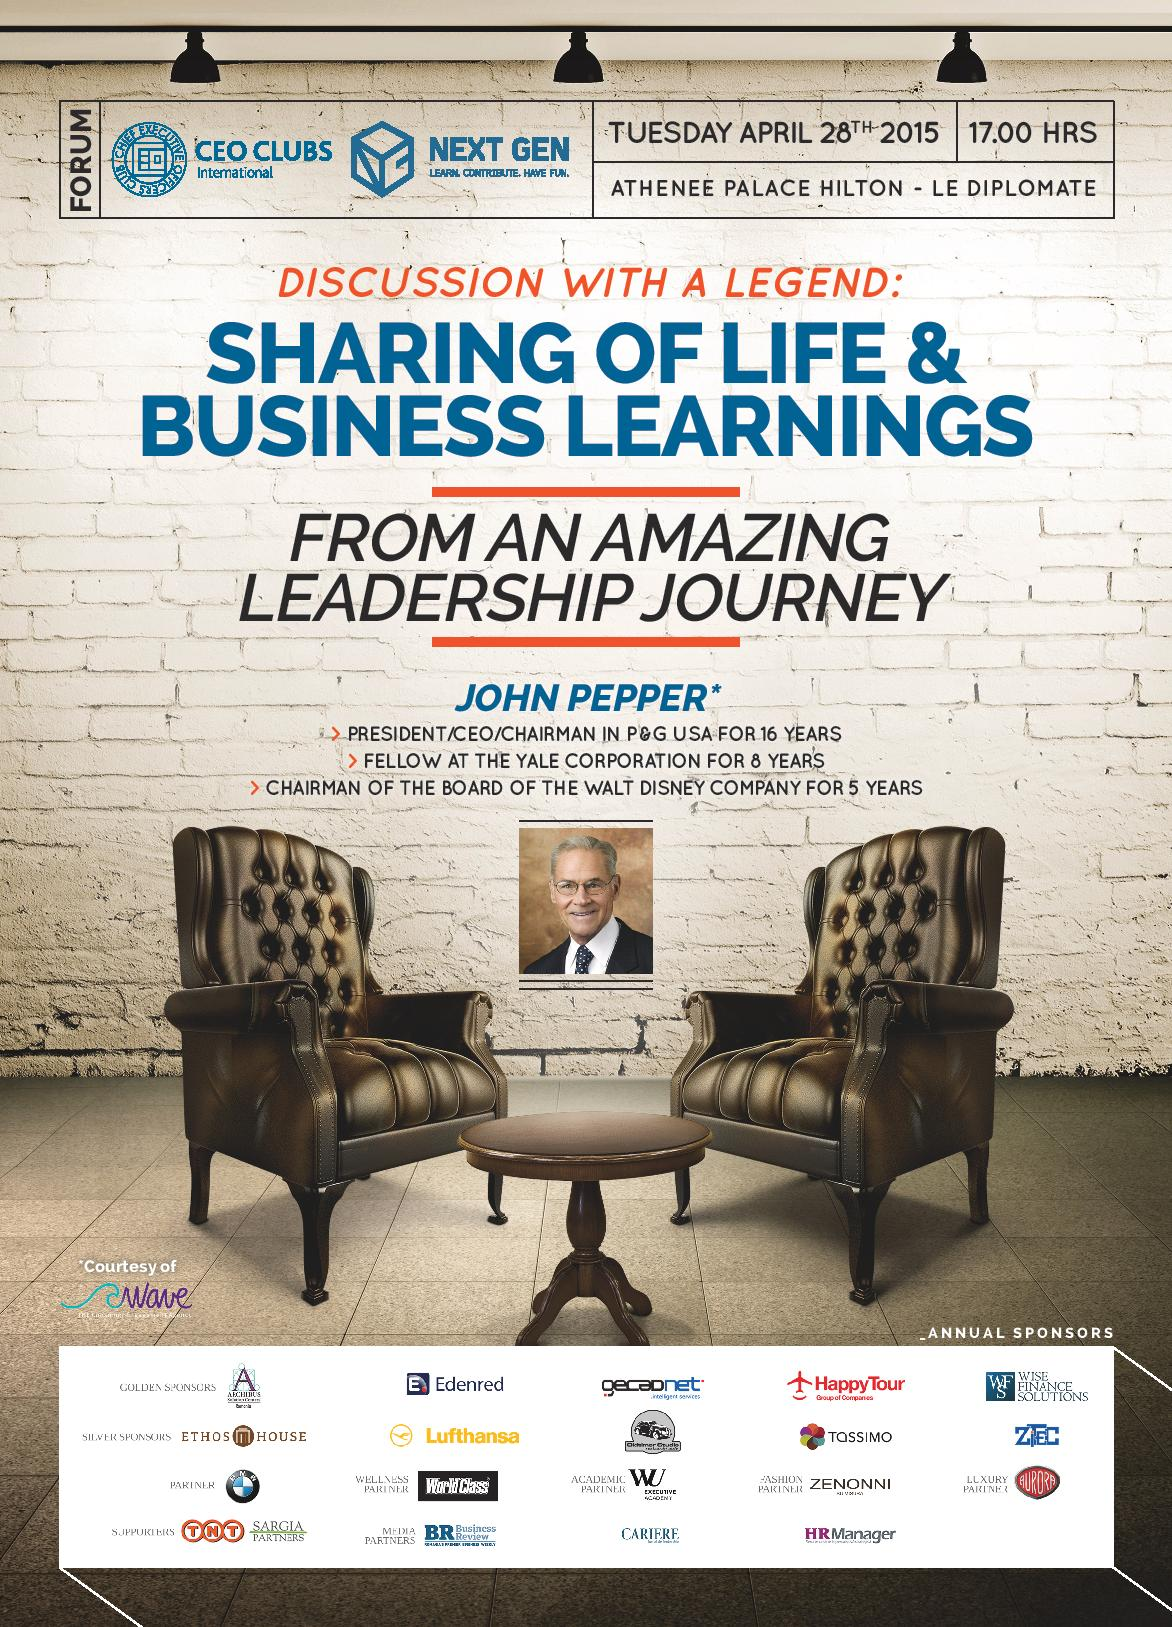 7th Forum: Sharing of Life & Business Learnings from an amazing Leadership Journey